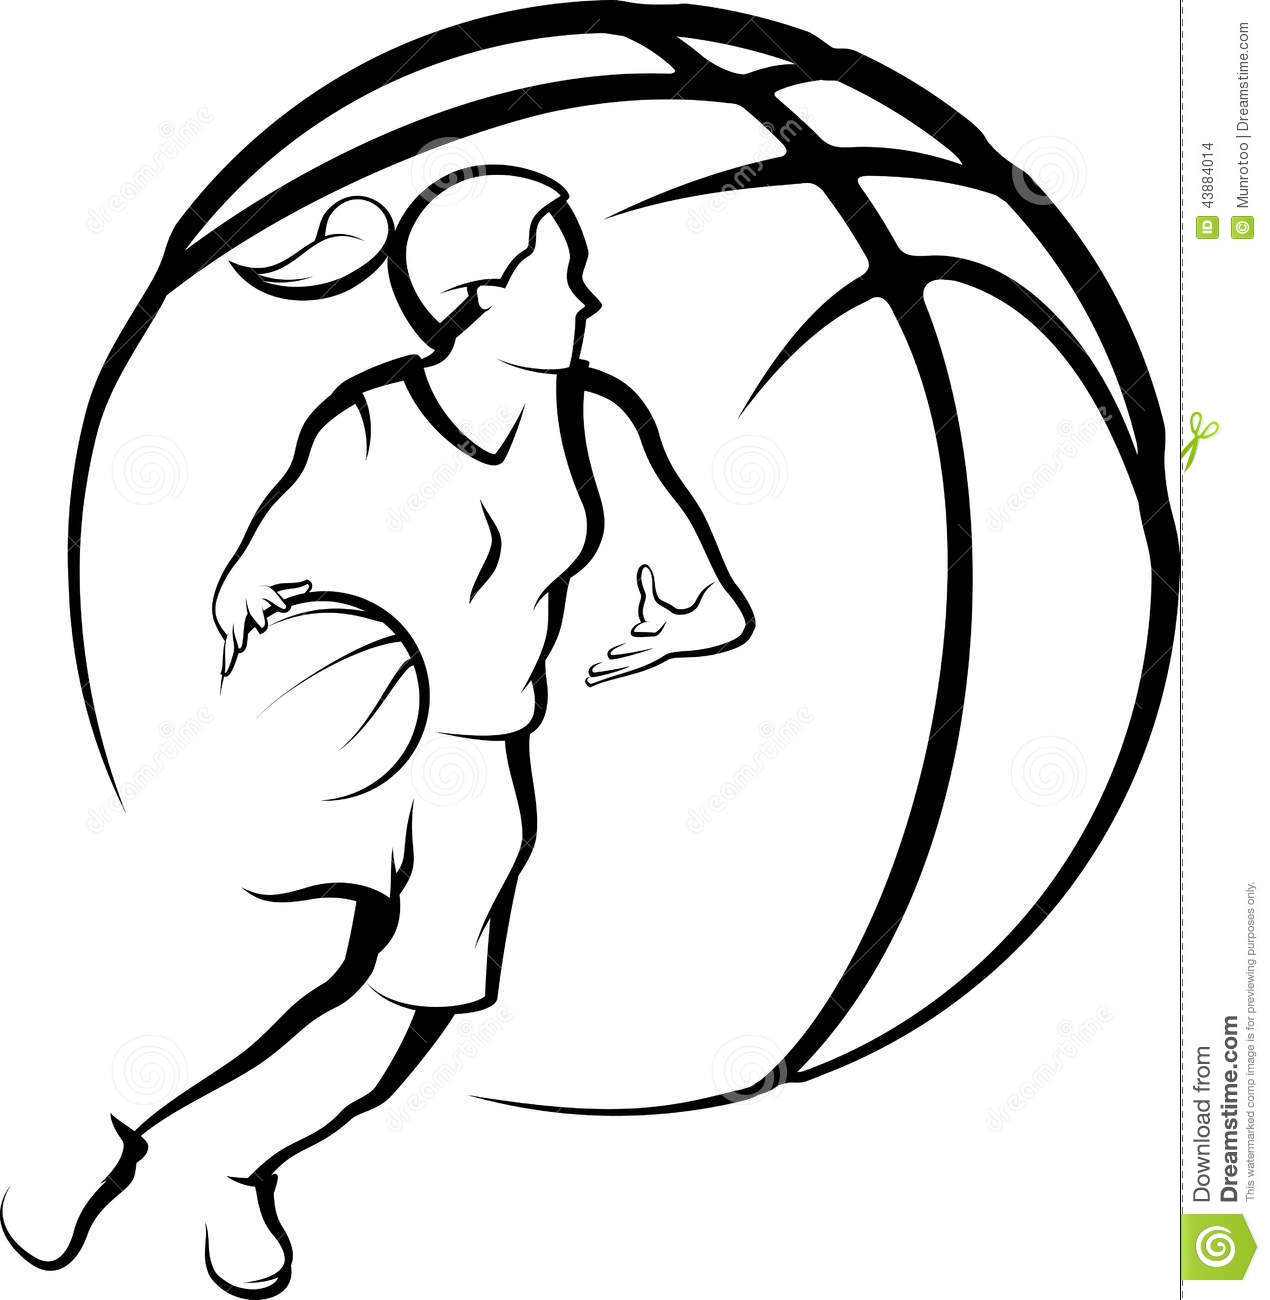 Basketball Female Drivingto Basket With Stylized Ball Stock Photo